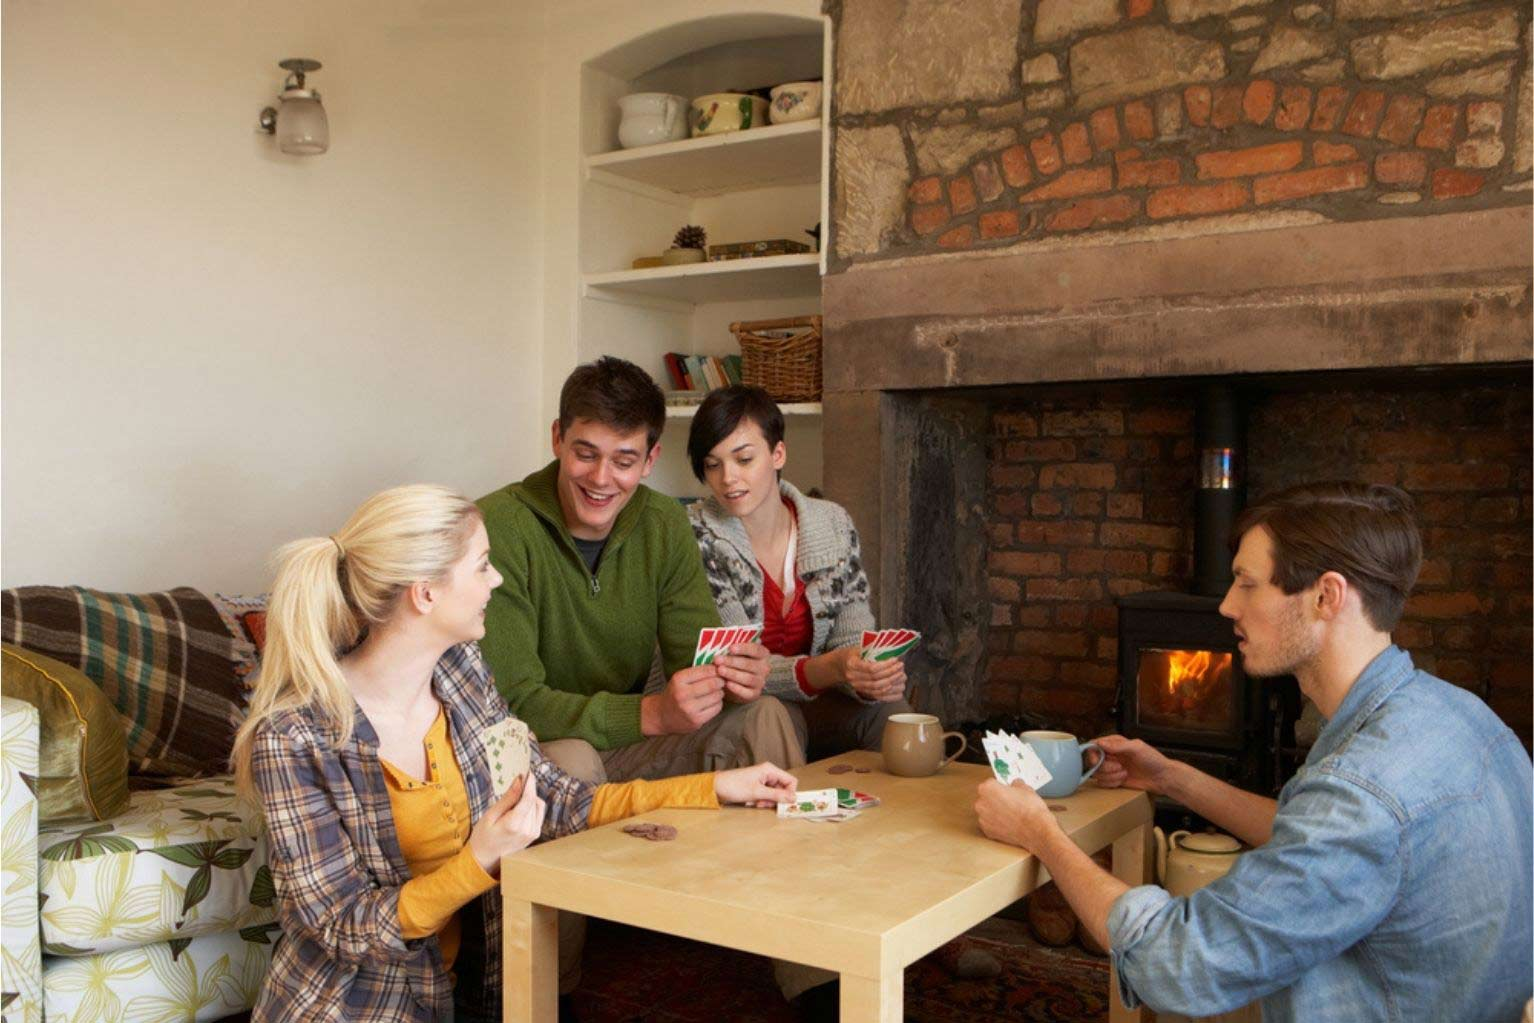 A group of people playing cards around a coffee table next to a fire place inside a house.